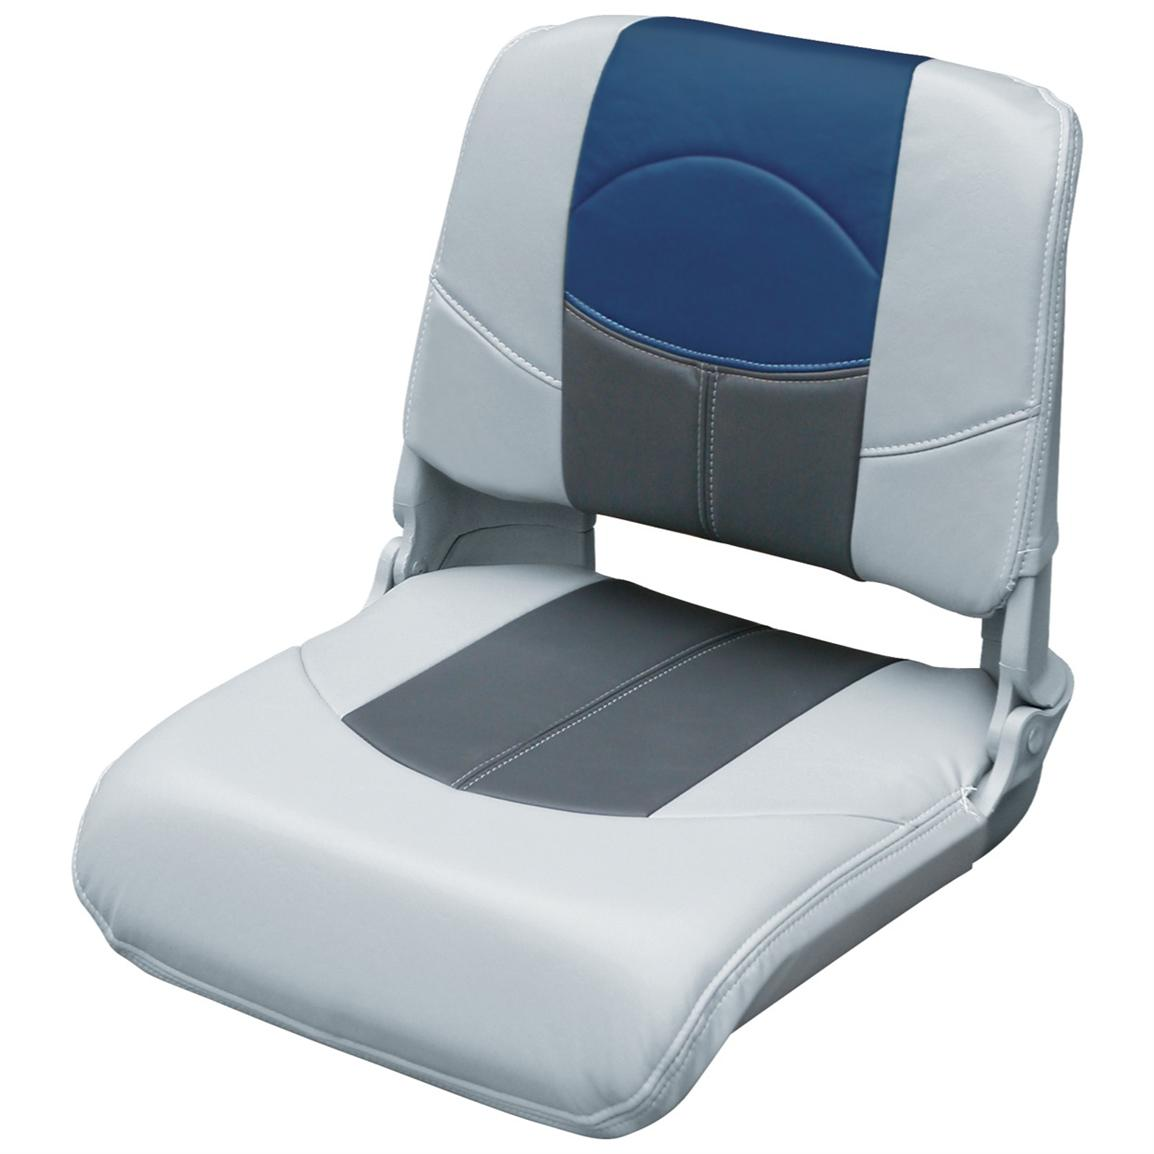 Wise® Blast-Off™ Series Pro-Style Folding Boat Seat, Grey / Charcoal / Blue